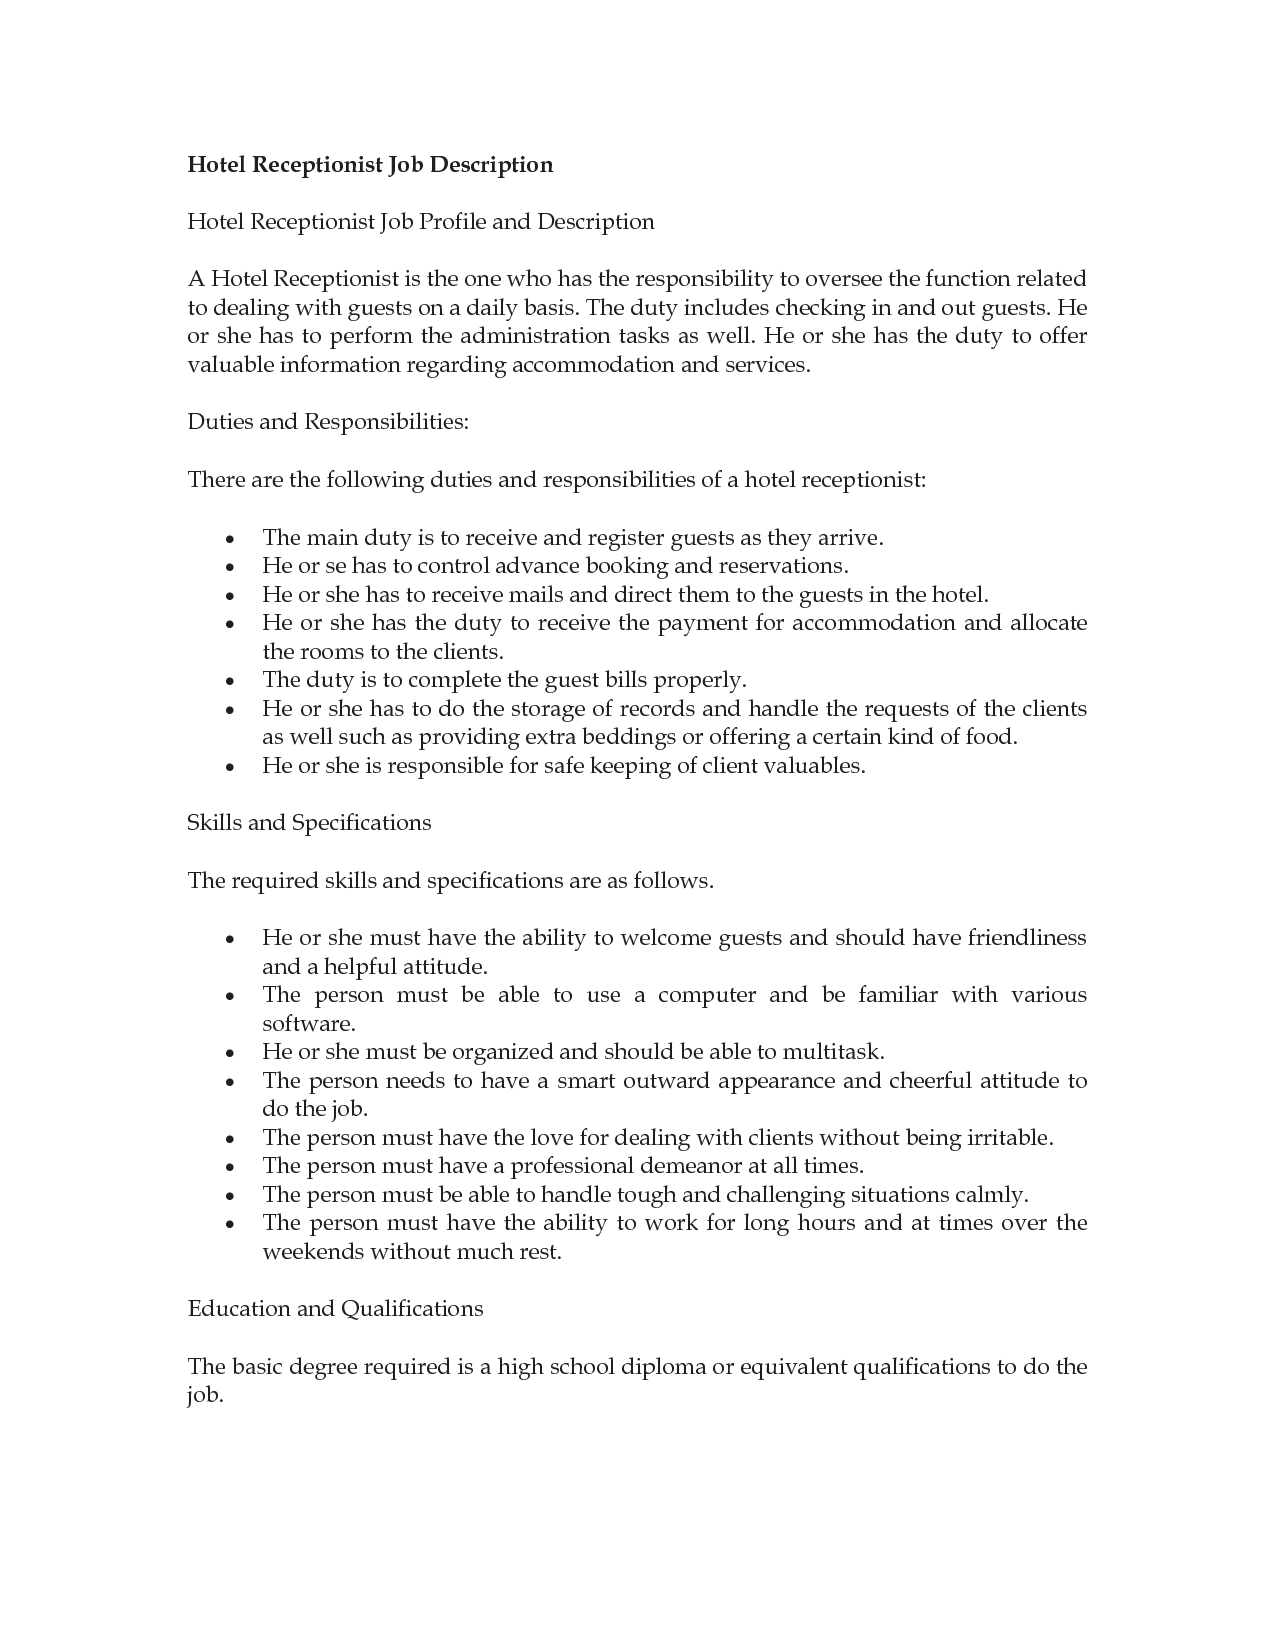 Office duties description resume